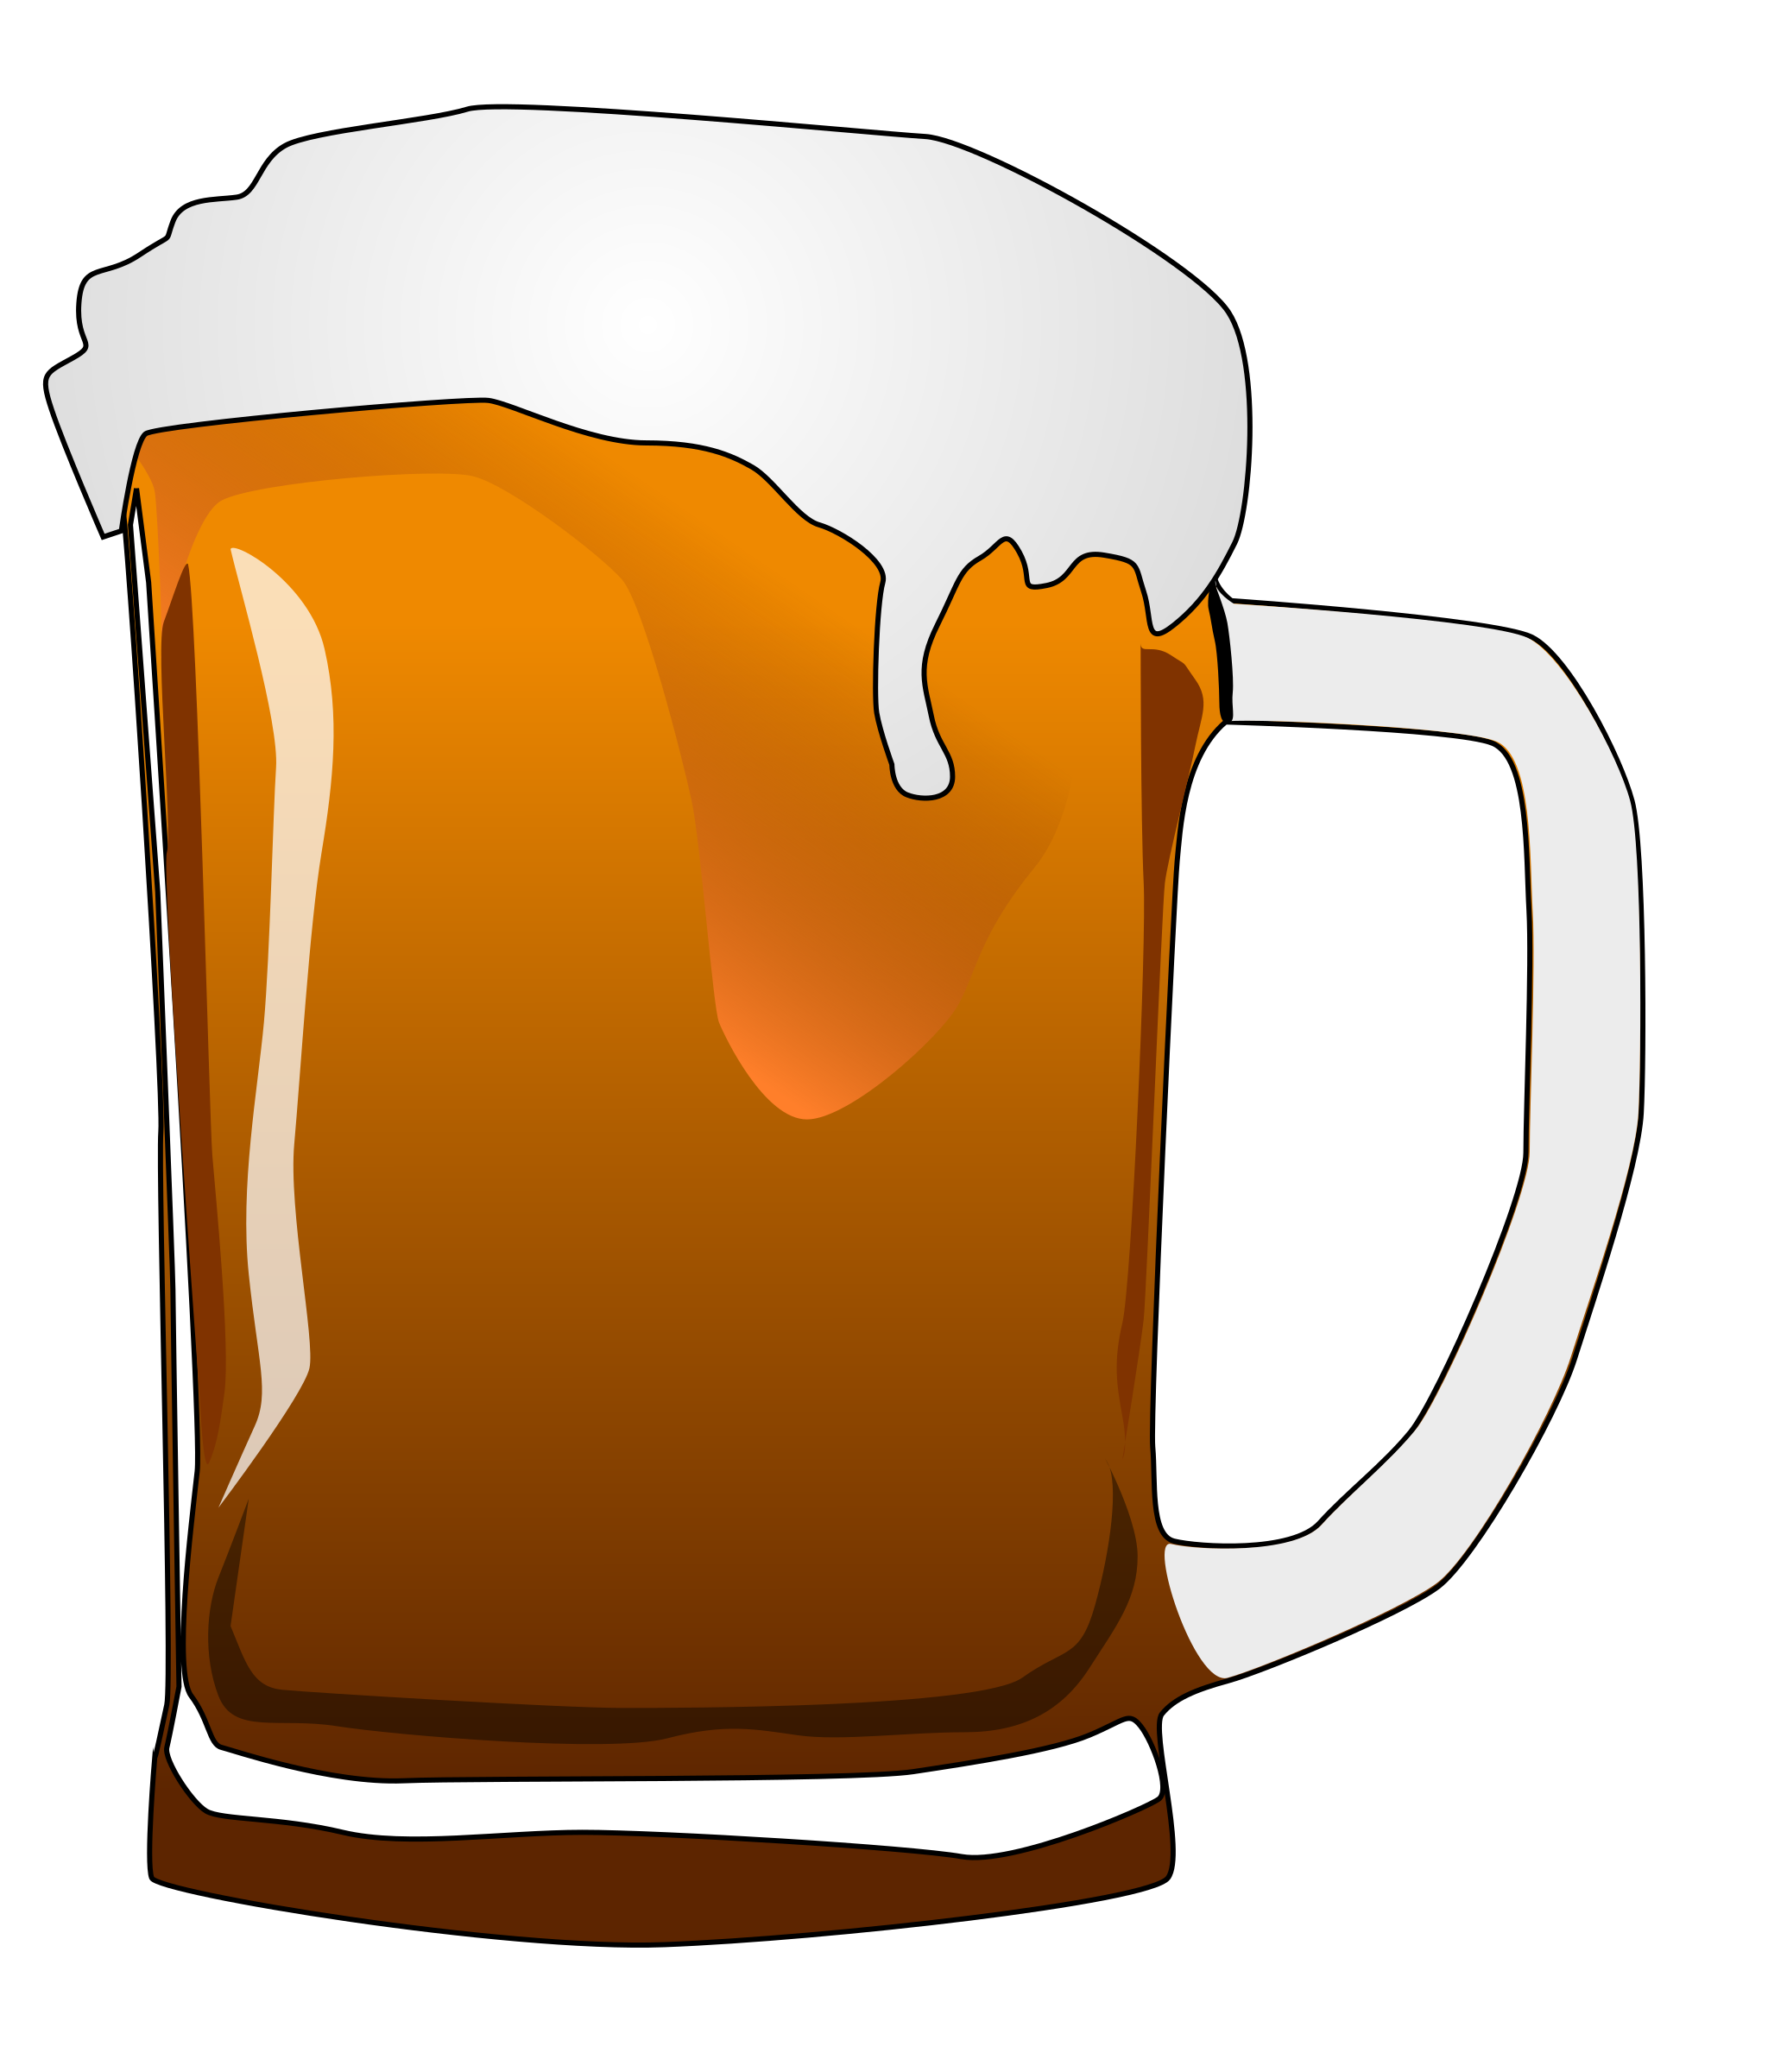 Pitcher Of Beer Clipart.